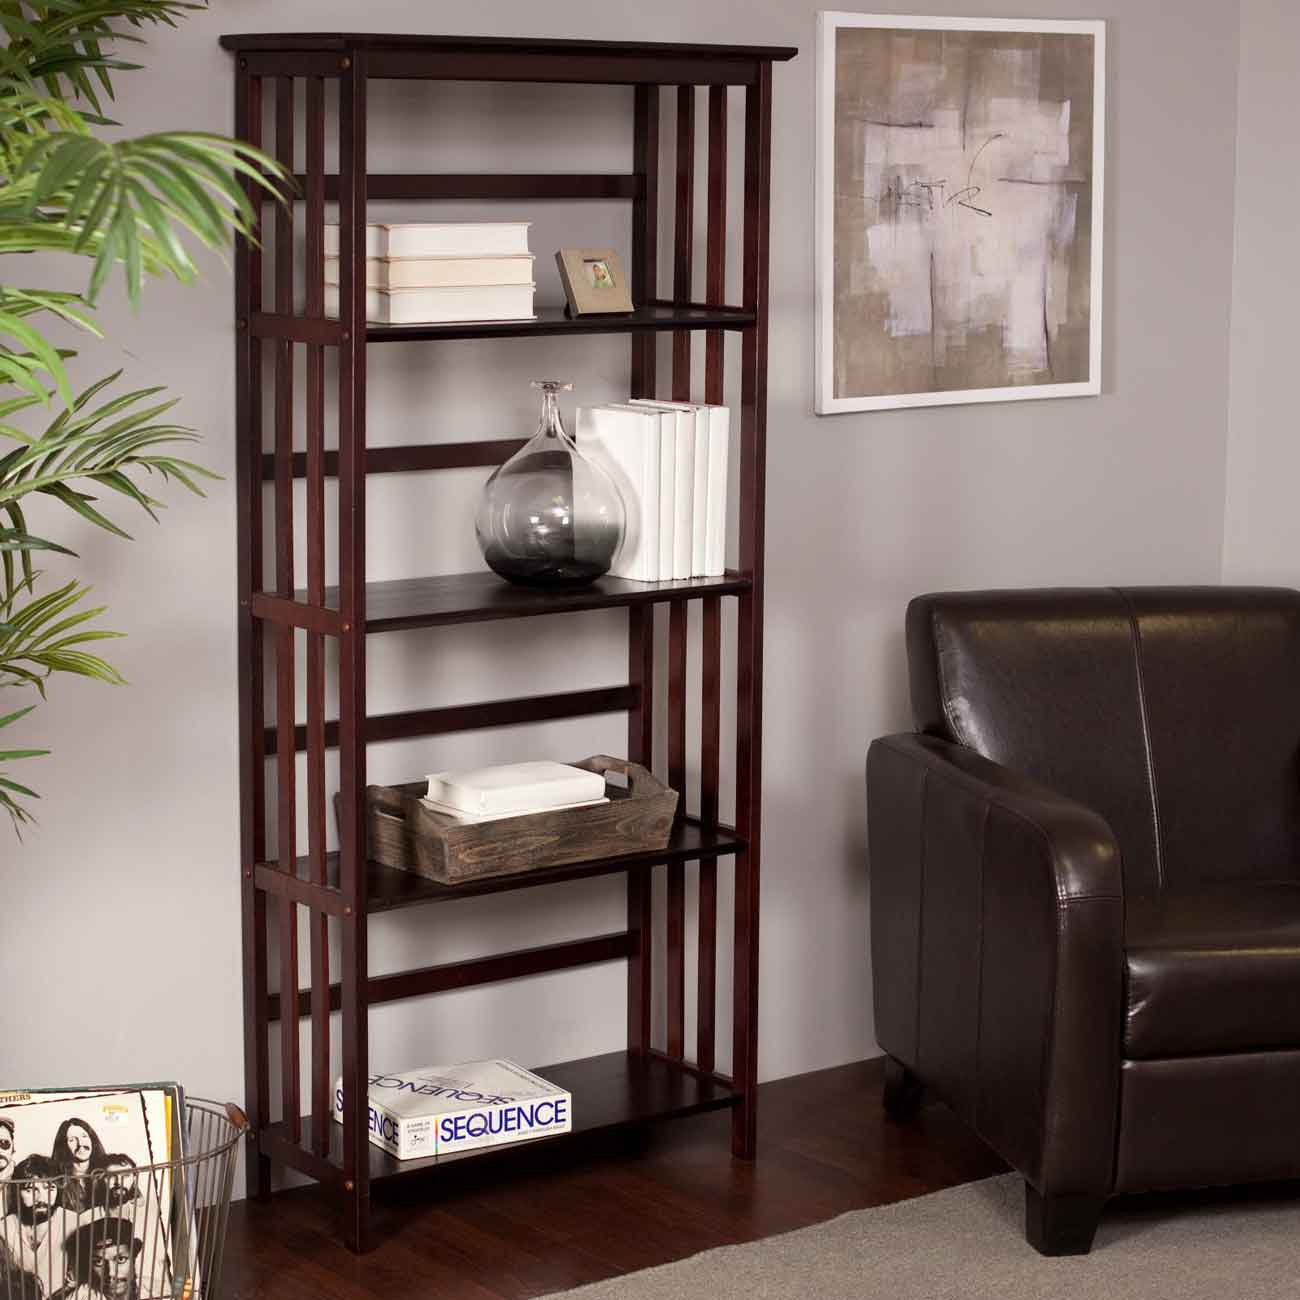 Espresso 4 tier Los Angeles Bookcases in Mission Style